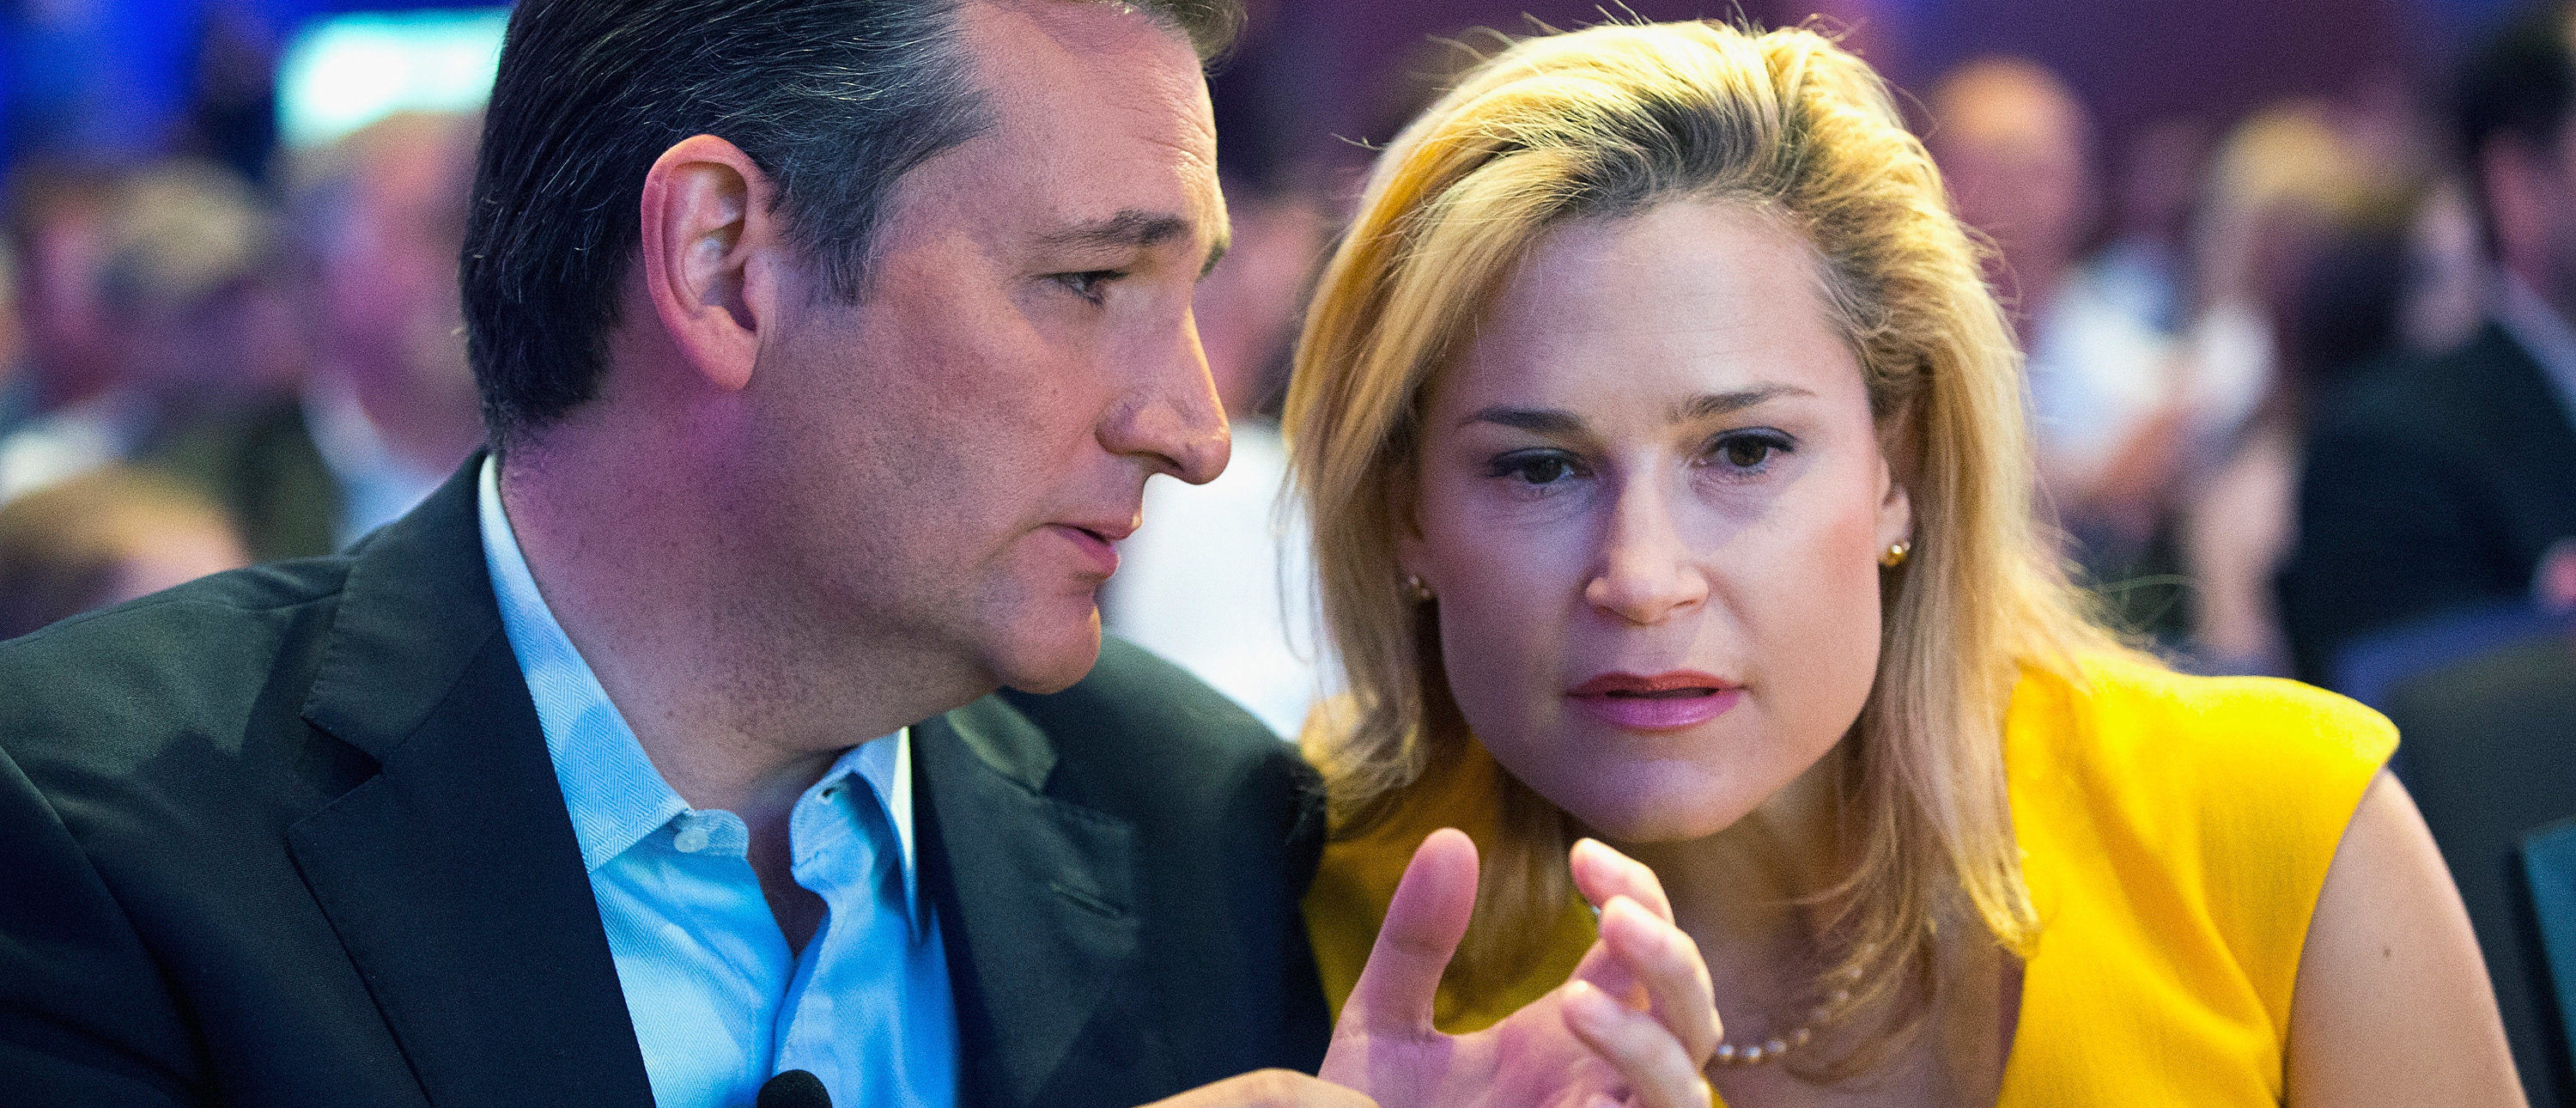 DES MOINES, IA - AUGUST 21: Republican presidential candidate Sen. Ted Cruz (R-TX) sits with his wife Heidi Nelson Cruz at the Religious Liberty Rally he was hosting on August 21, 2015 in Des Moines, Iowa. Earlier in the day Republican presidential candidate Sen. Ted Cruz (R-TX) visited and spoke to guests at the Iowa State Fair. (Photo by Scott Olson/Getty Images)